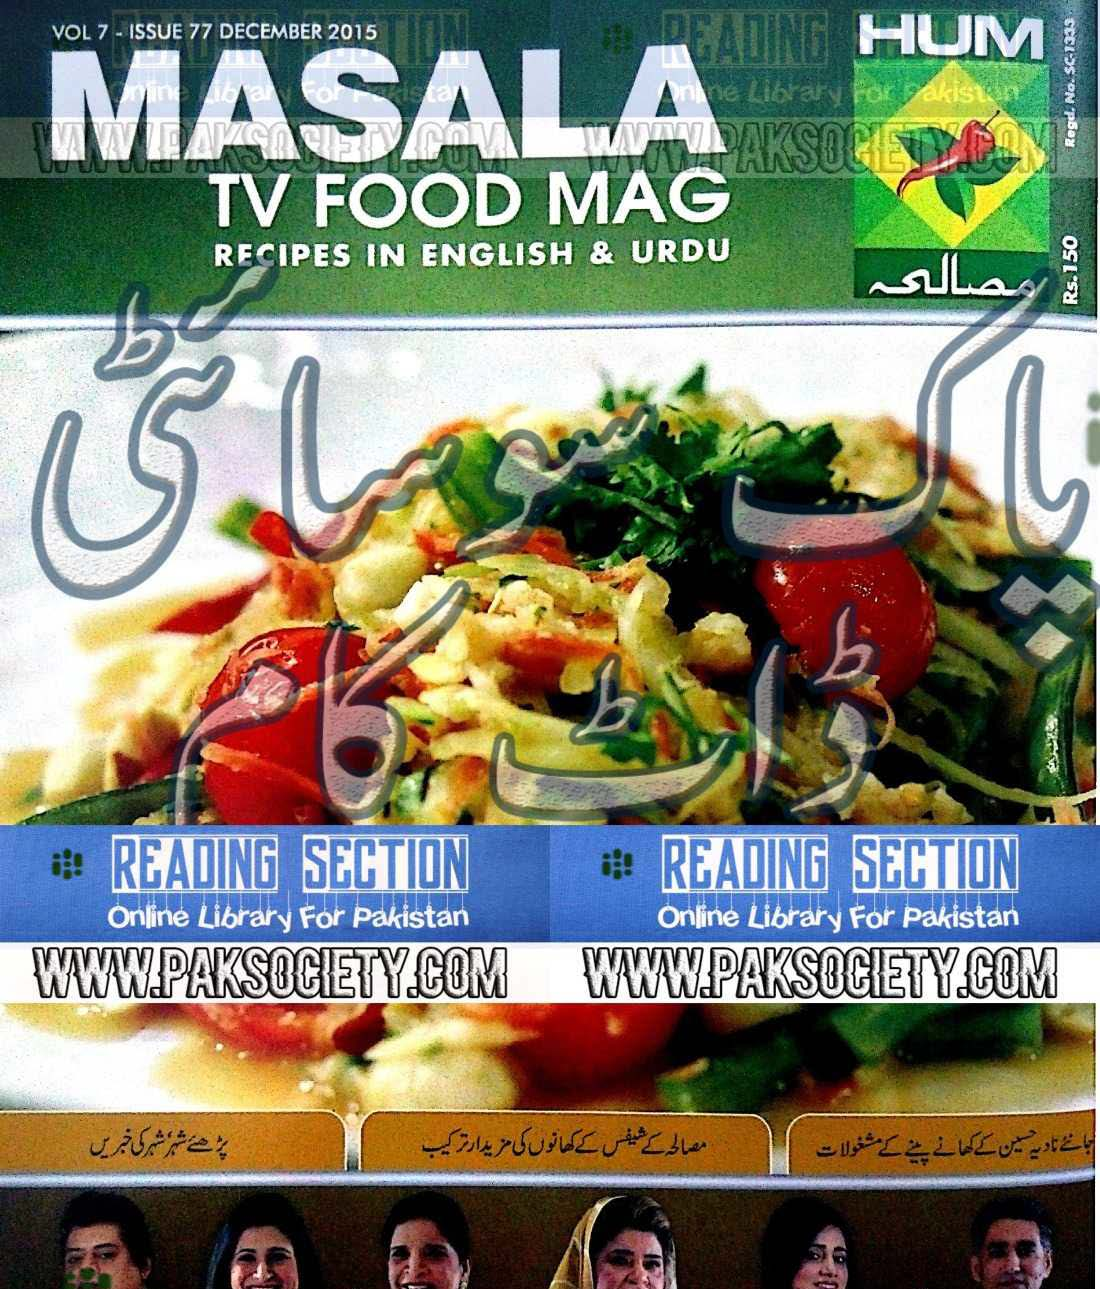 Masala tv food magazine december 2015 books tubebest free online masala tv food magazine december 2015 forumfinder Gallery